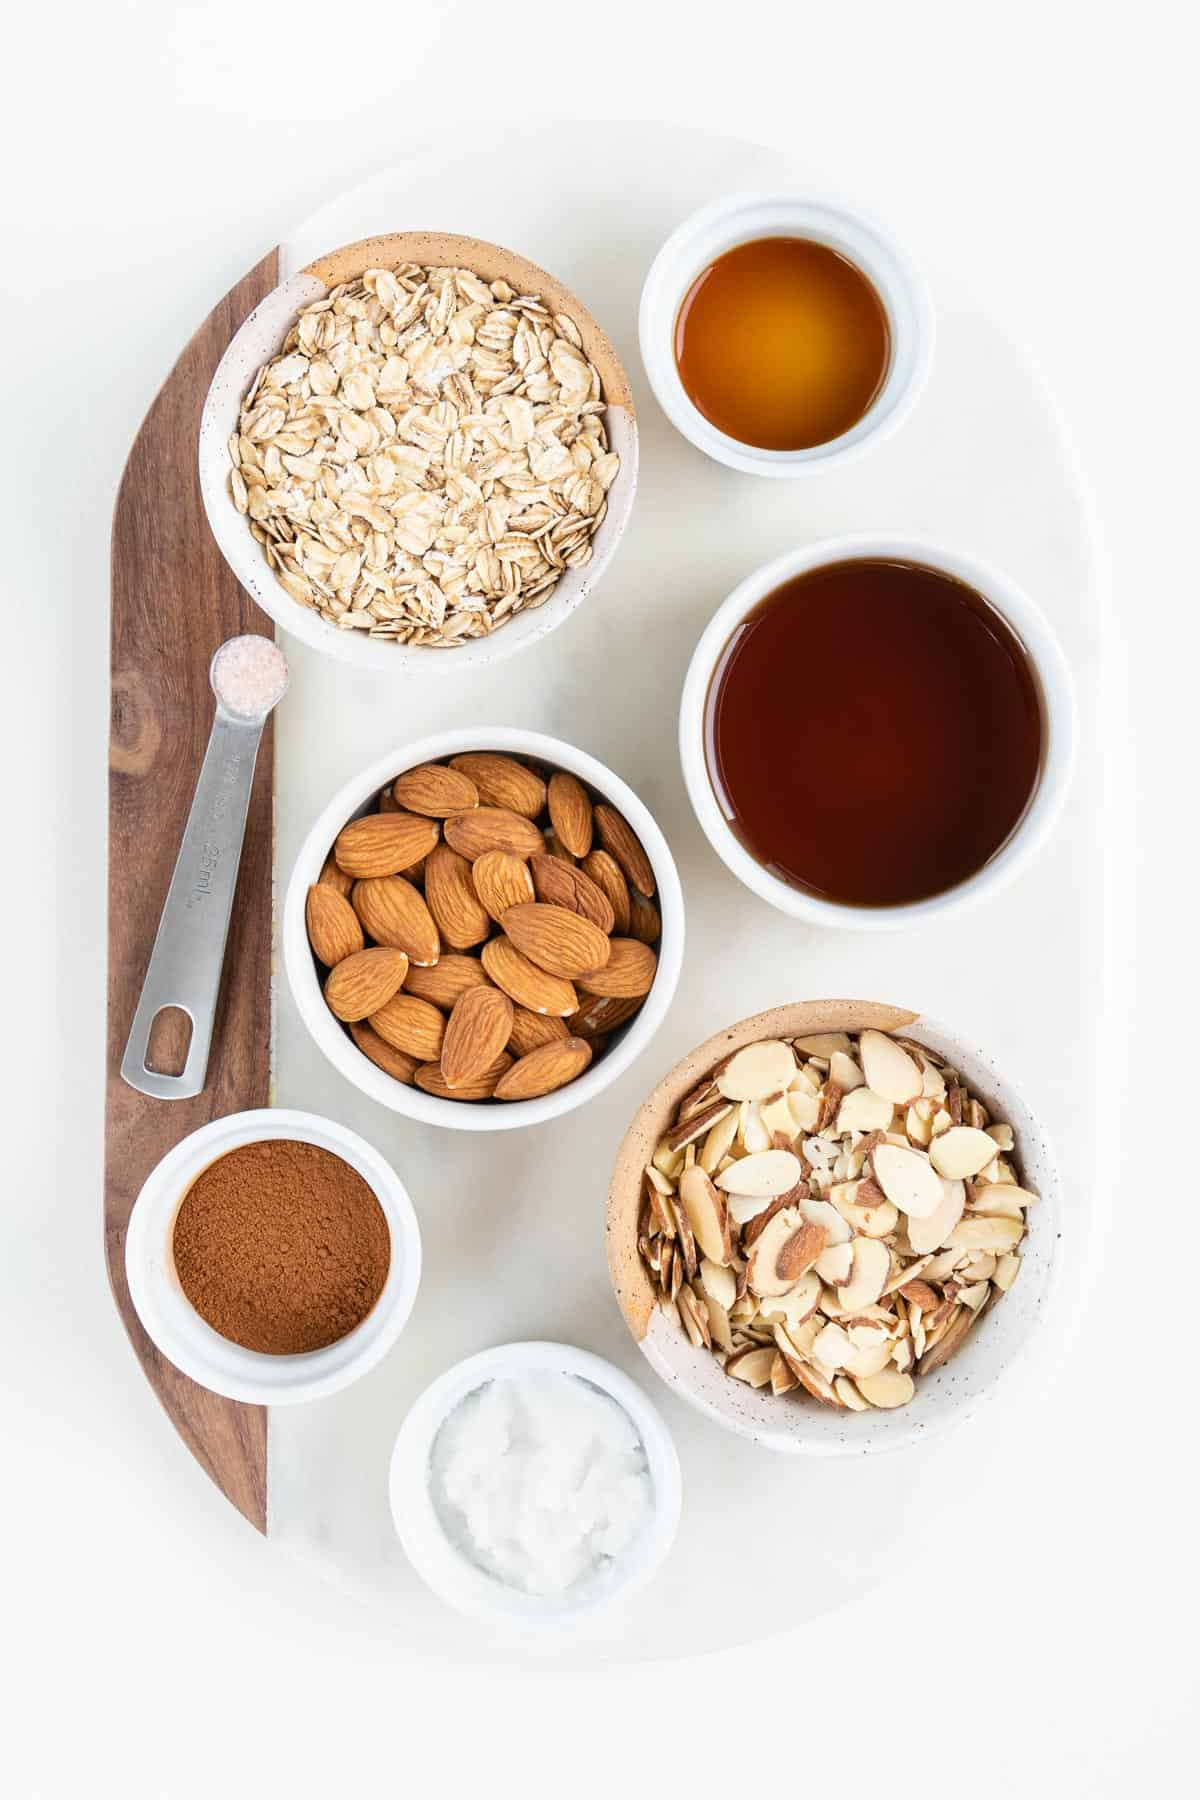 small bowls filled with oats, nuts, cinnamon, maple syrup, and coconut oil on a white marble board